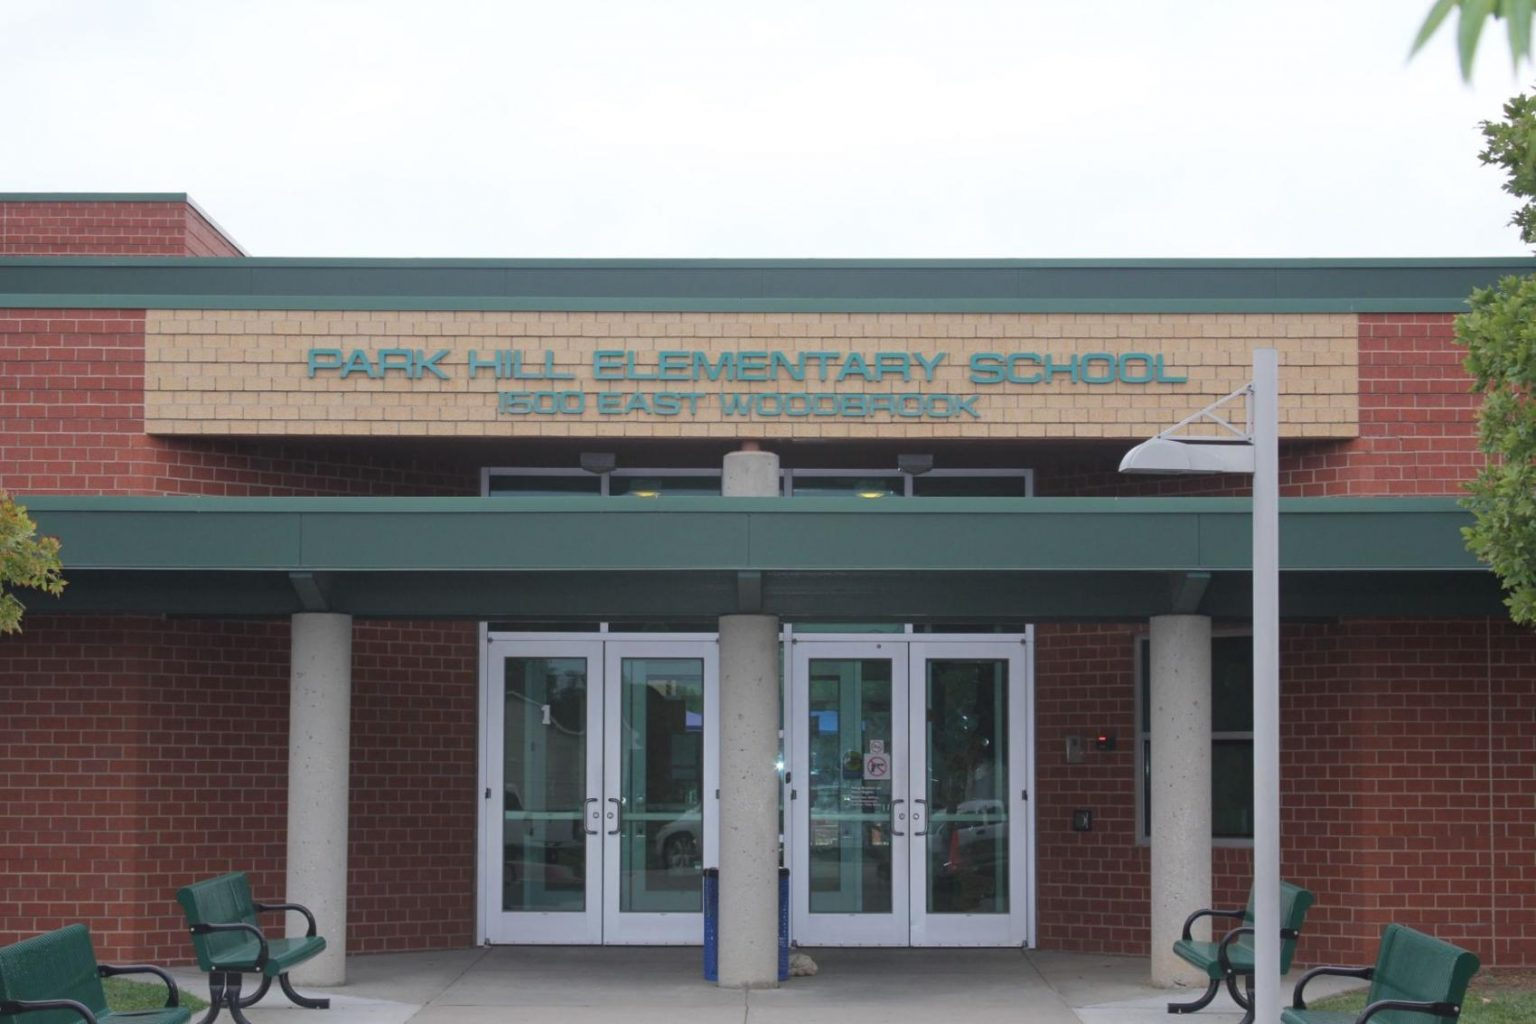 Derby Elementary Schools to Start Security Upgrades